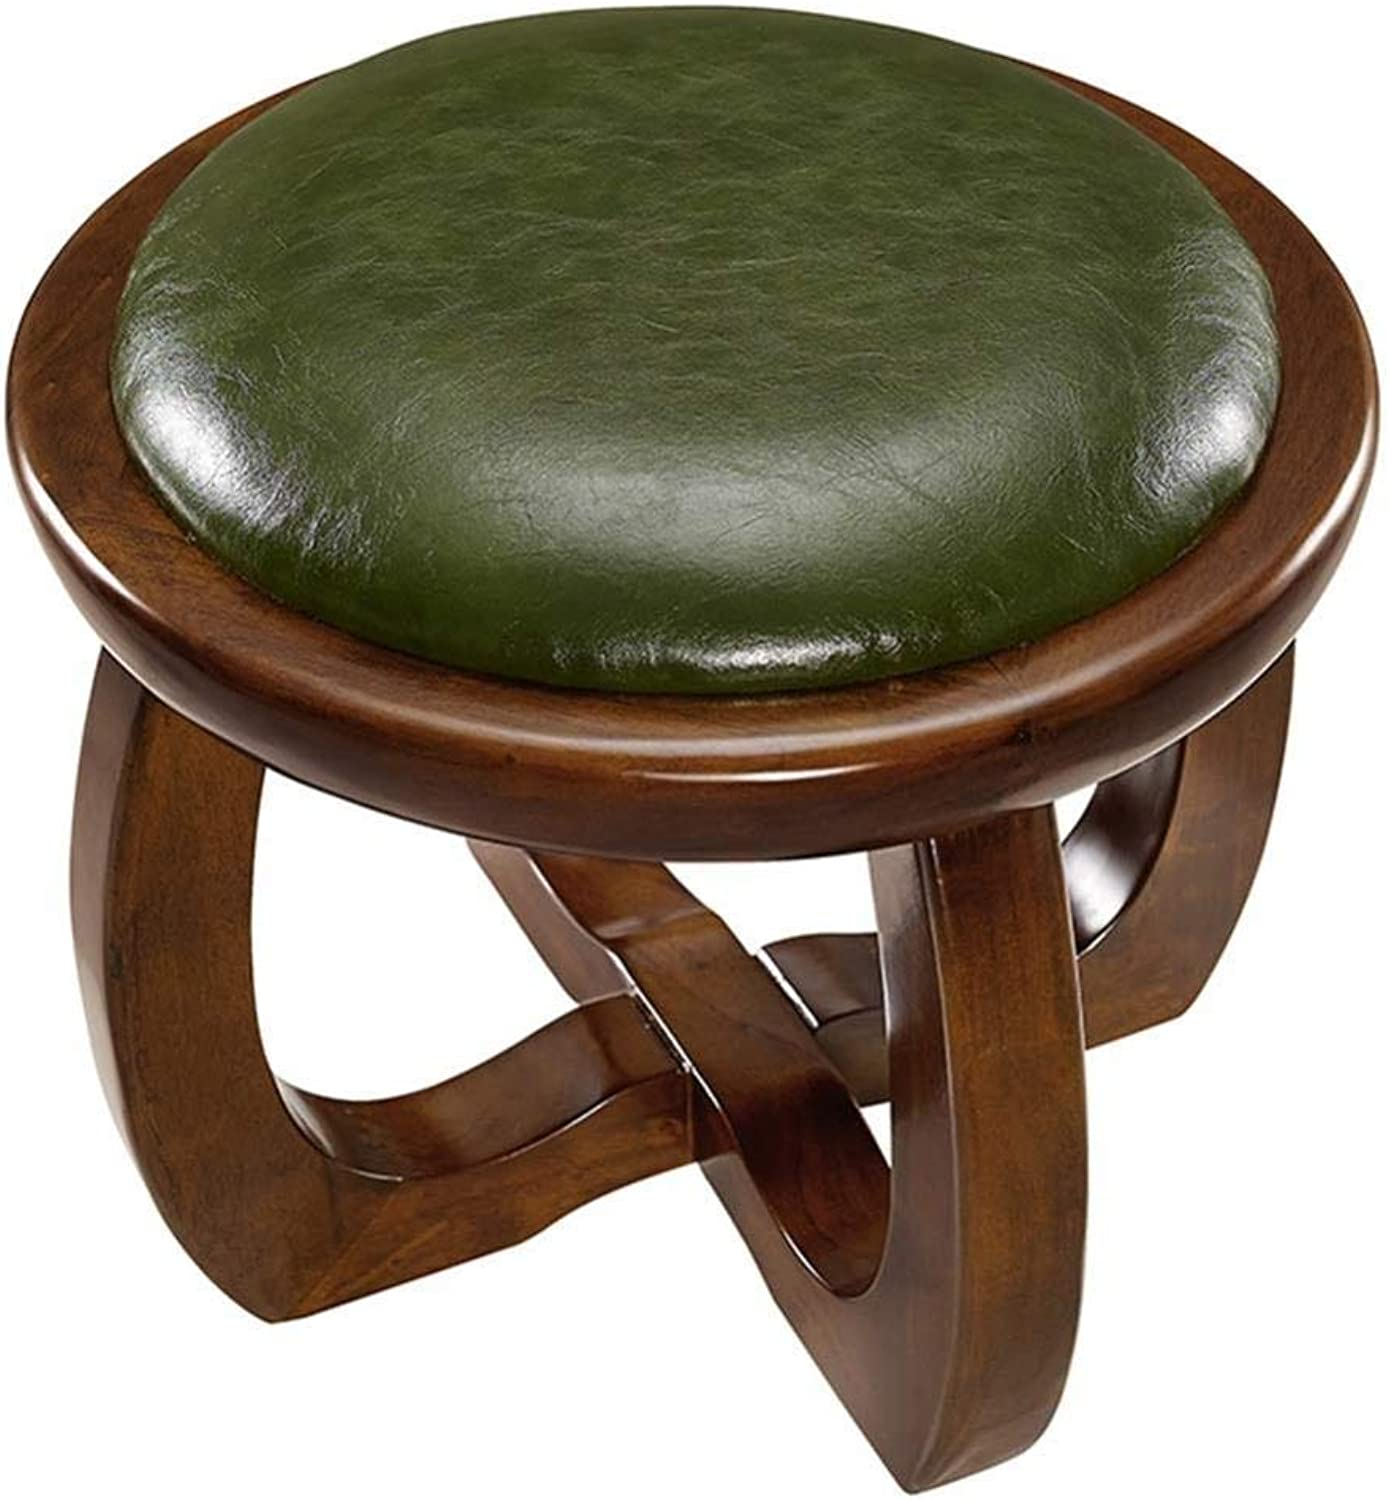 Stool Household Rubber Wood PU Cushion Waterproof Round Low Stool Footstool Stool (color   Green)